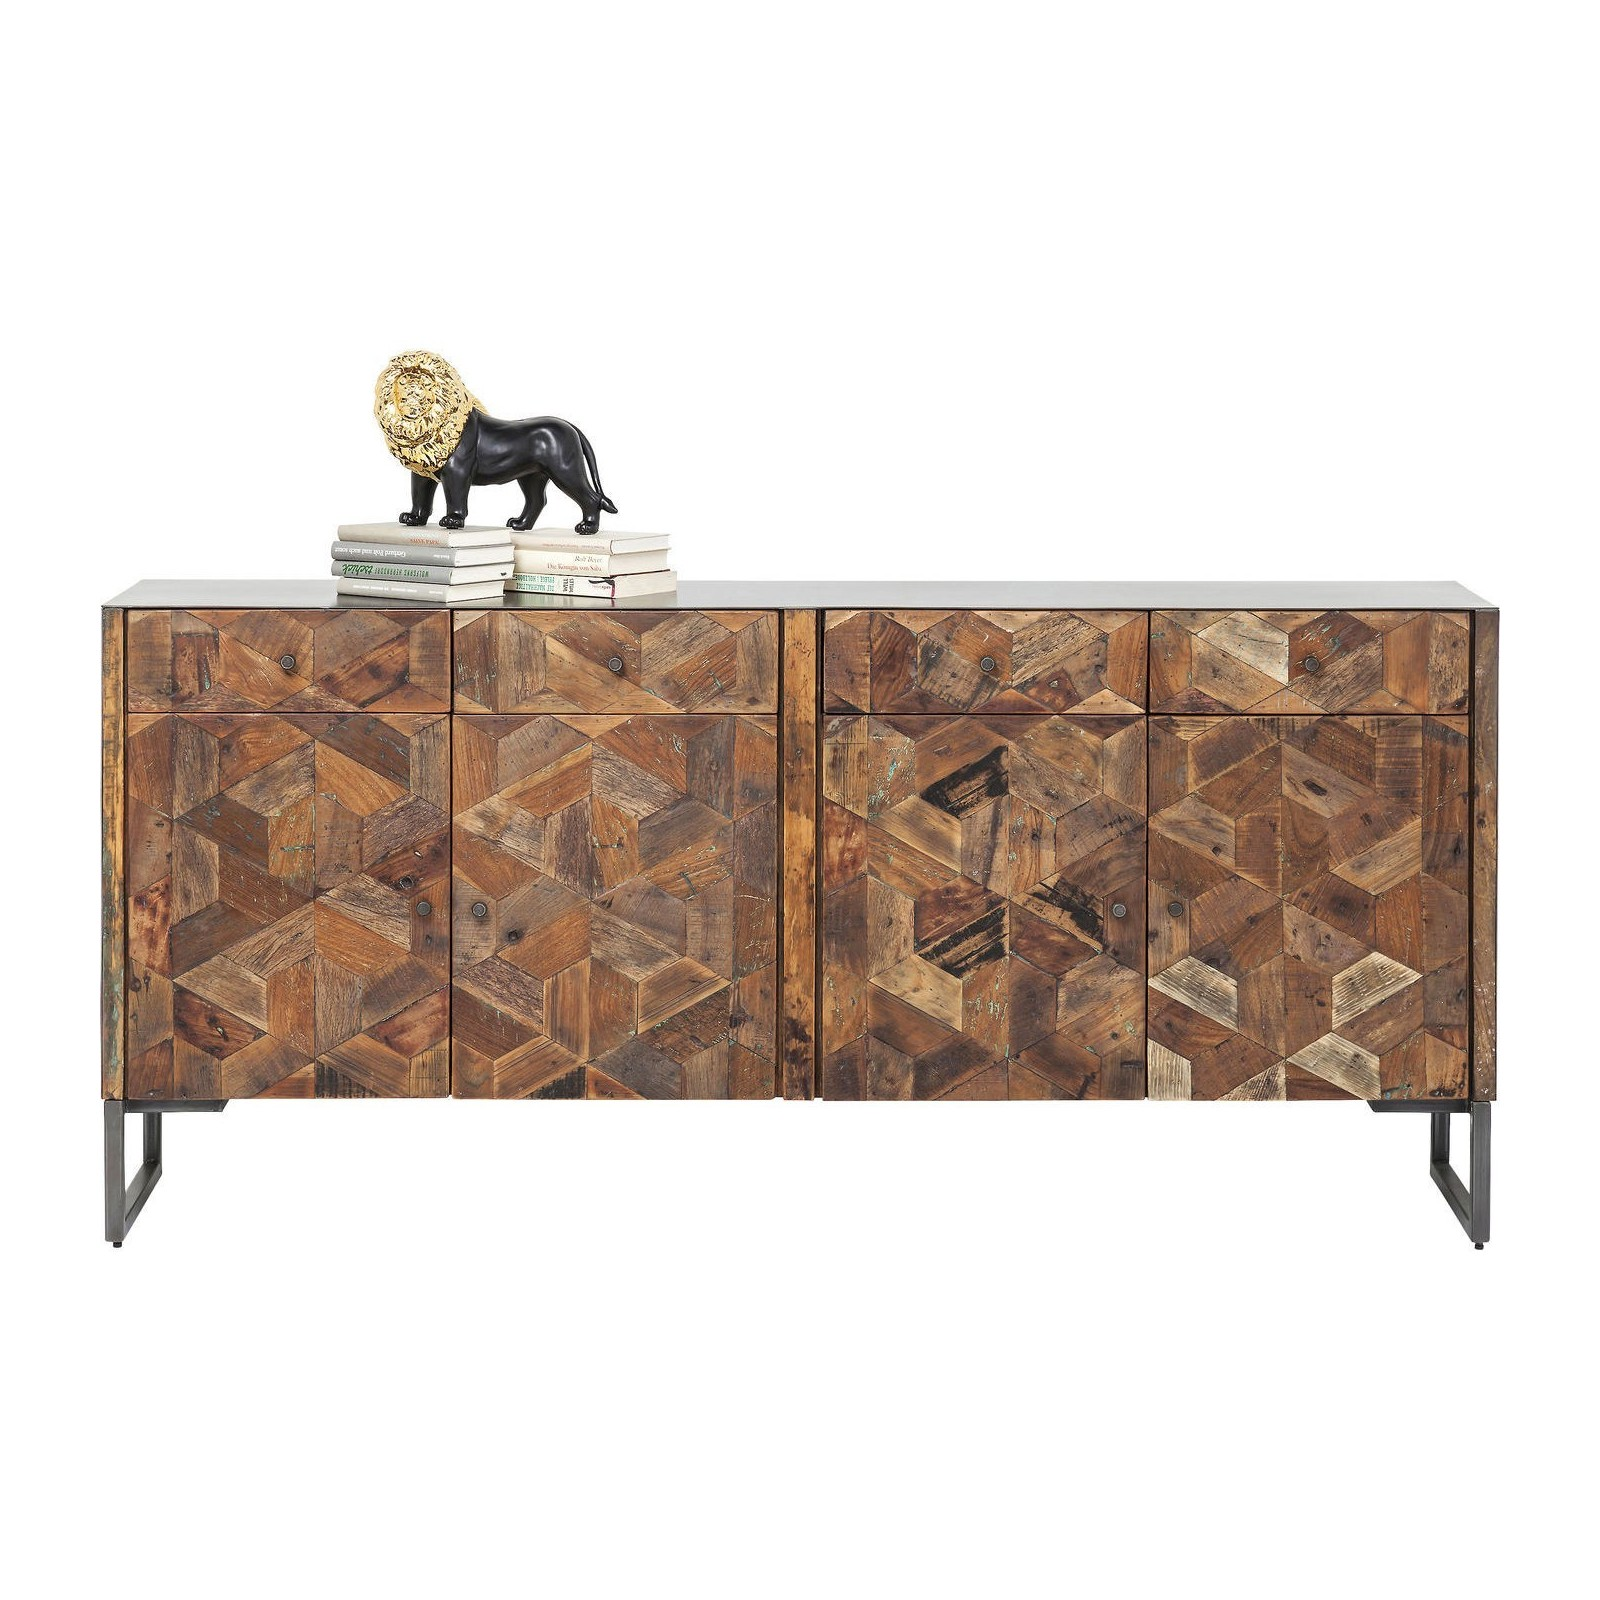 buffet industriel en bois hunters lodge kare design. Black Bedroom Furniture Sets. Home Design Ideas